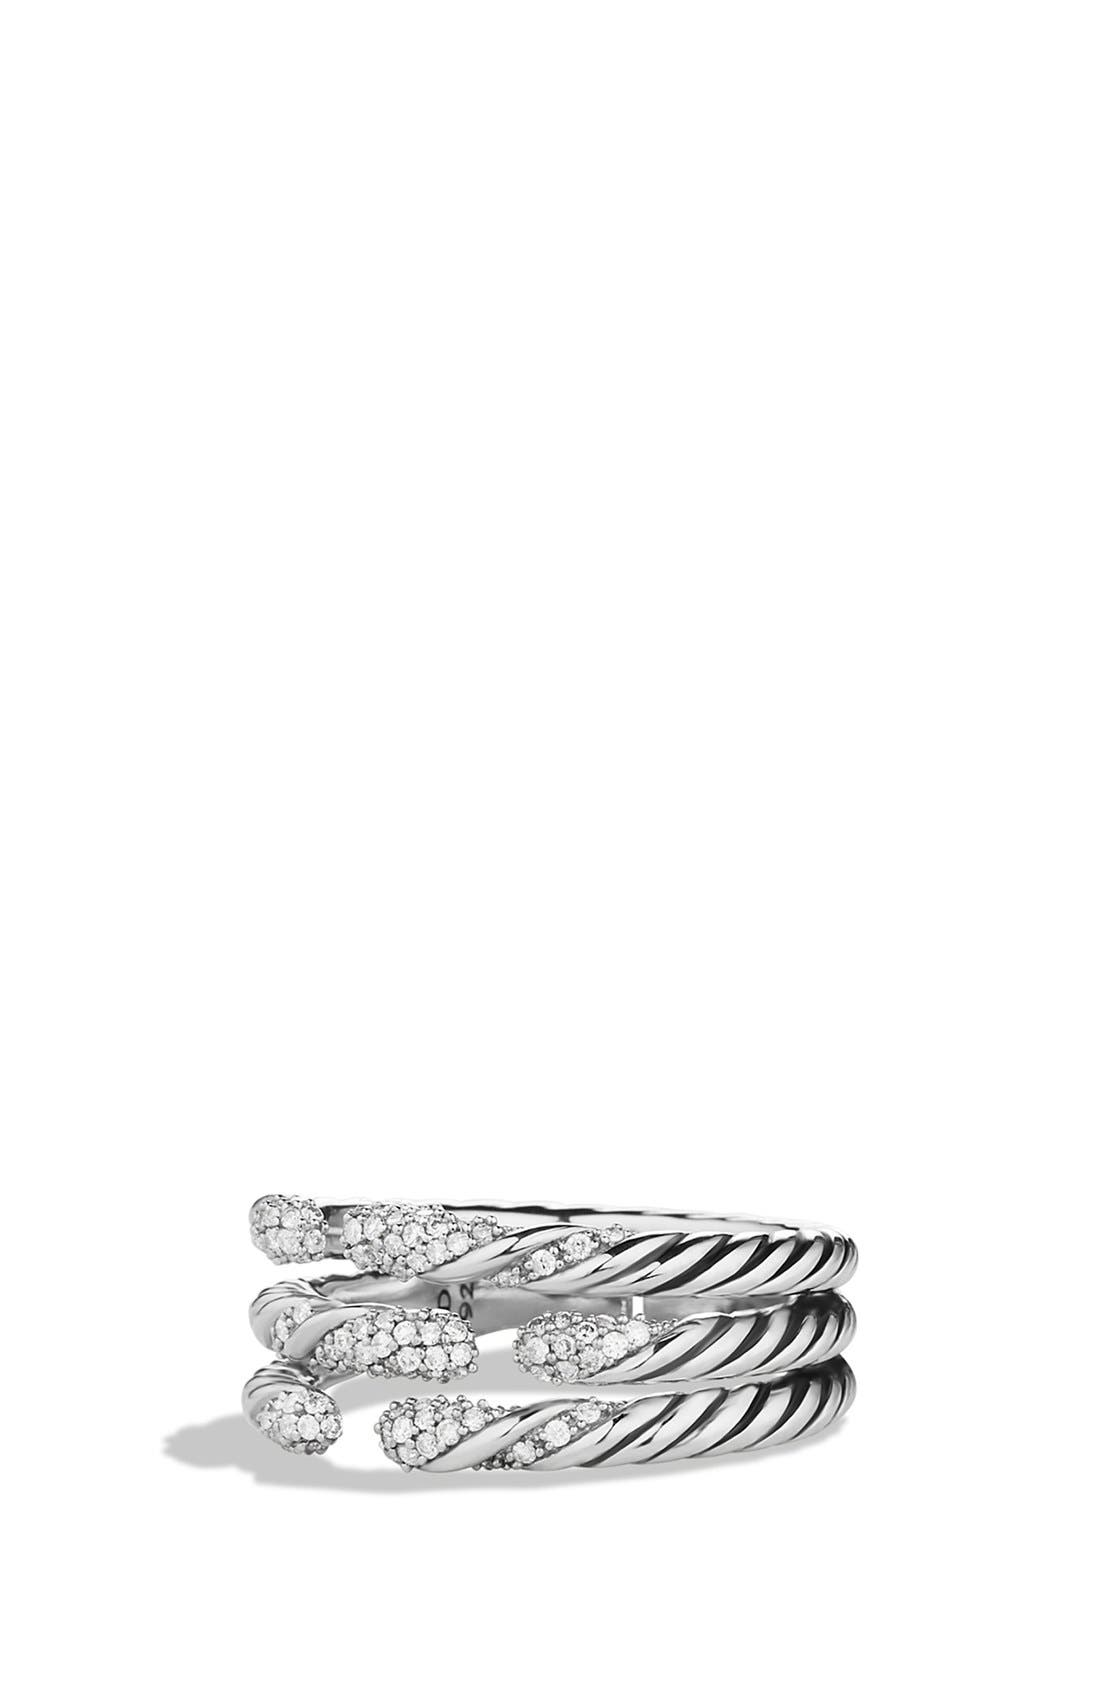 Main Image - David Yurman 'Willow' Three-Row Ring with Diamonds